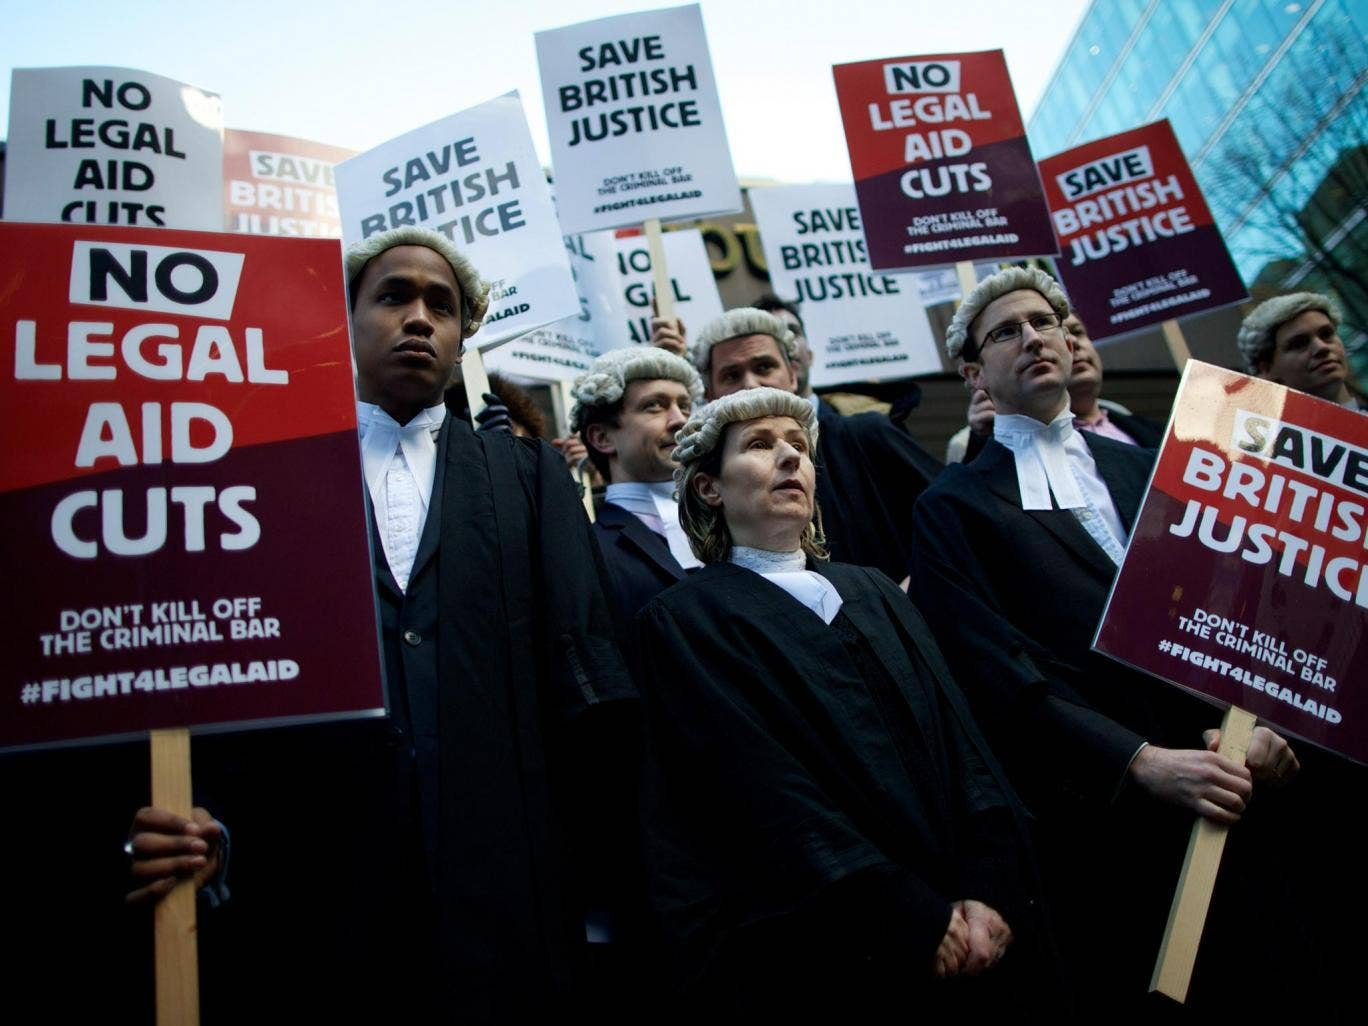 British legal professionals hold placards during a protest against cuts to the legal aid budget during a protest outside Southwark Crown Court